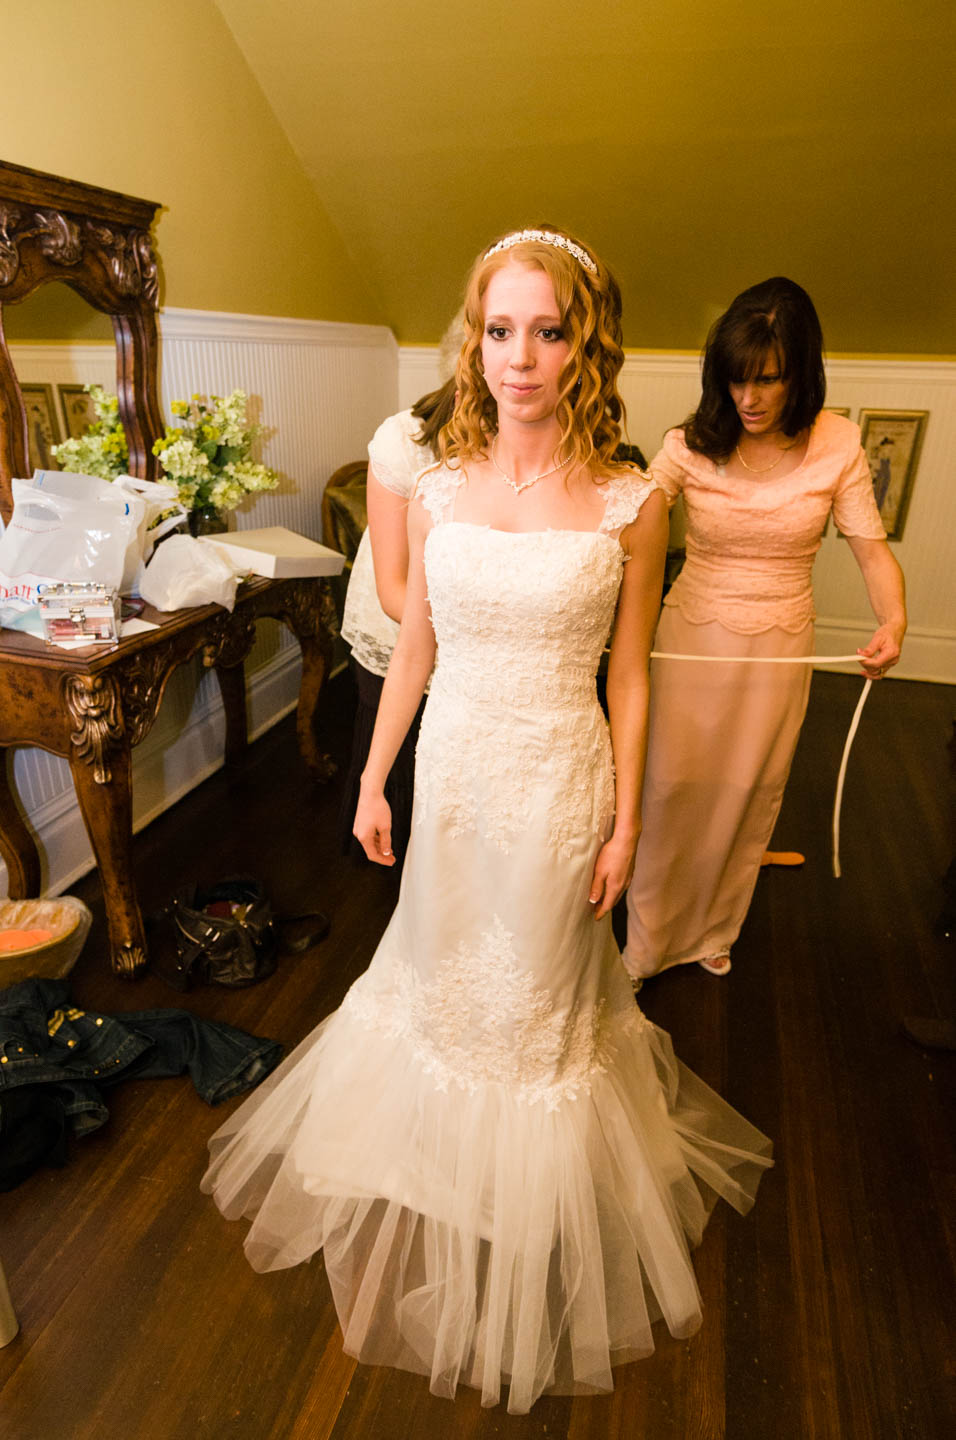 Bride puts on her wedding dress